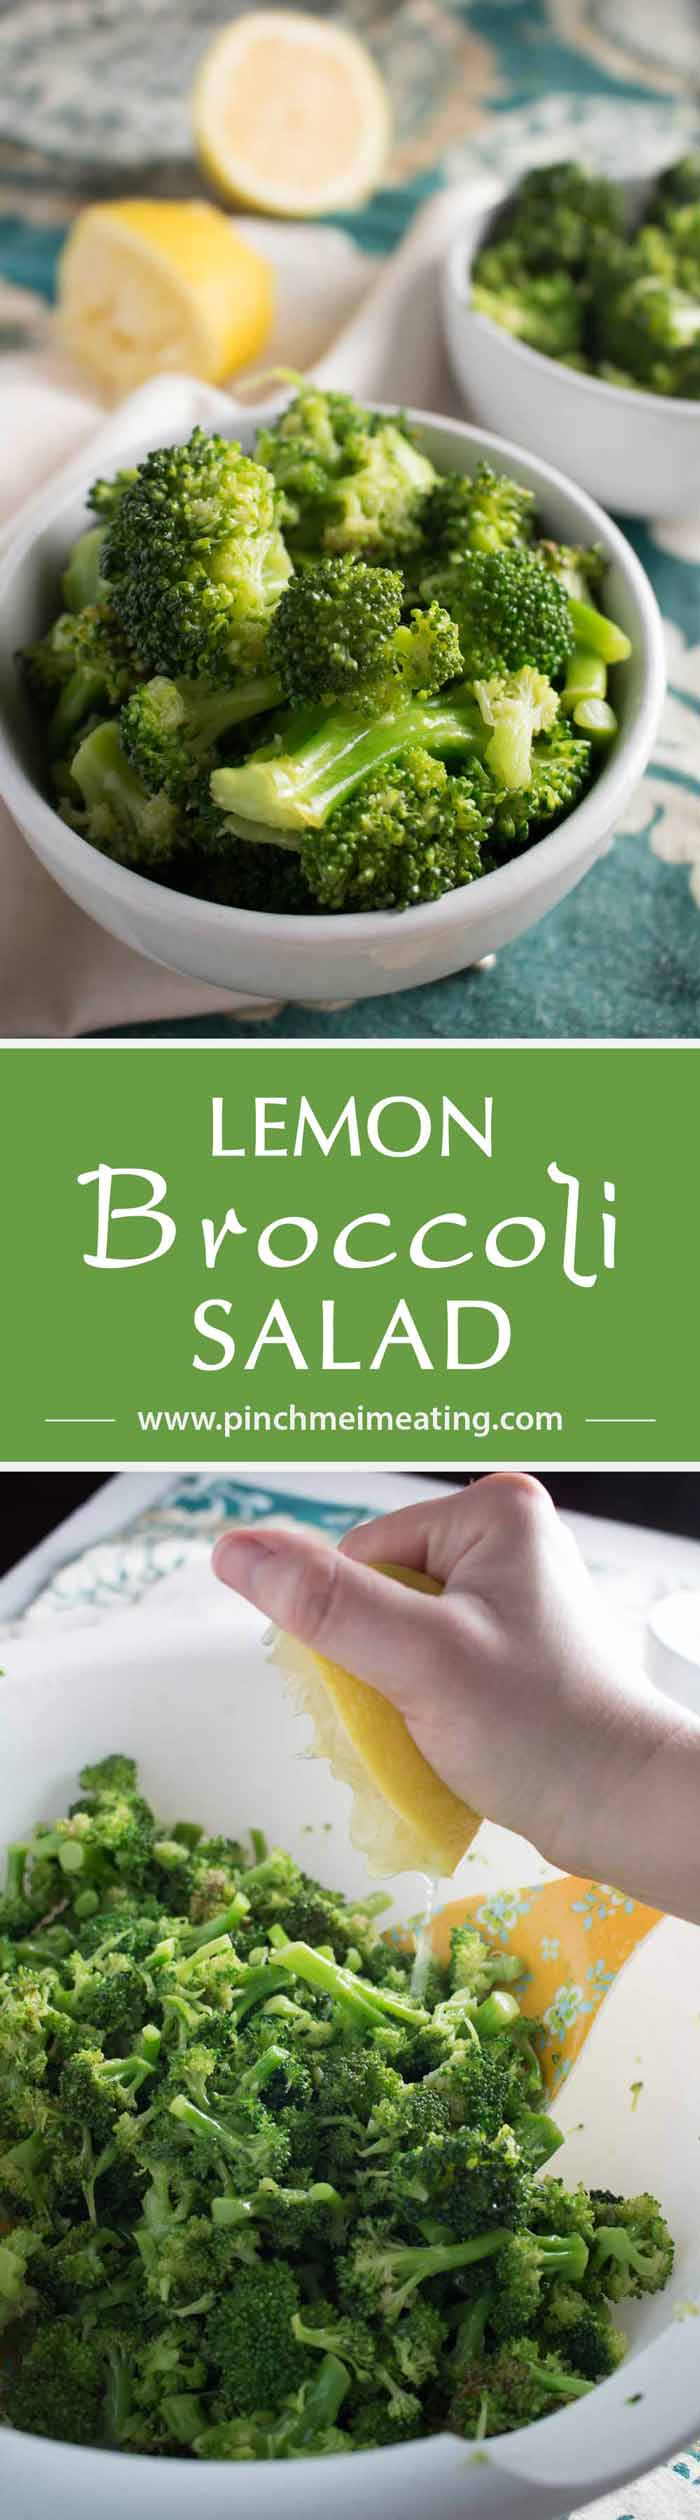 I can't stop eating this! A simple lemon broccoli salad with garlic is quick and easy to whip up as a healthy, fresh side dish. | www.pinchmeimeating.com